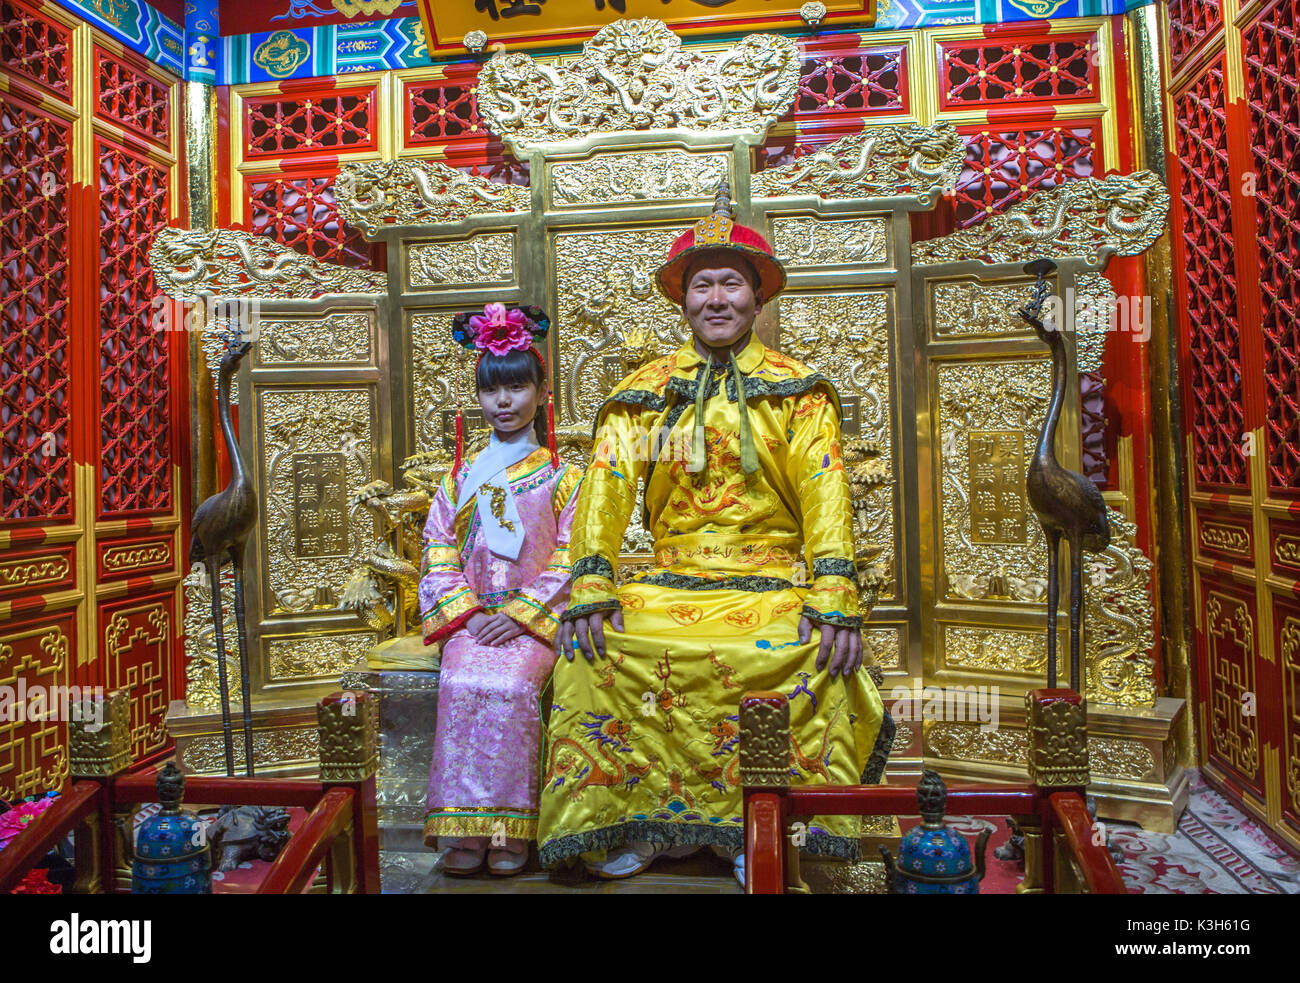 China, Beijin City, The Forbidden City, Foto stage - Stock Image